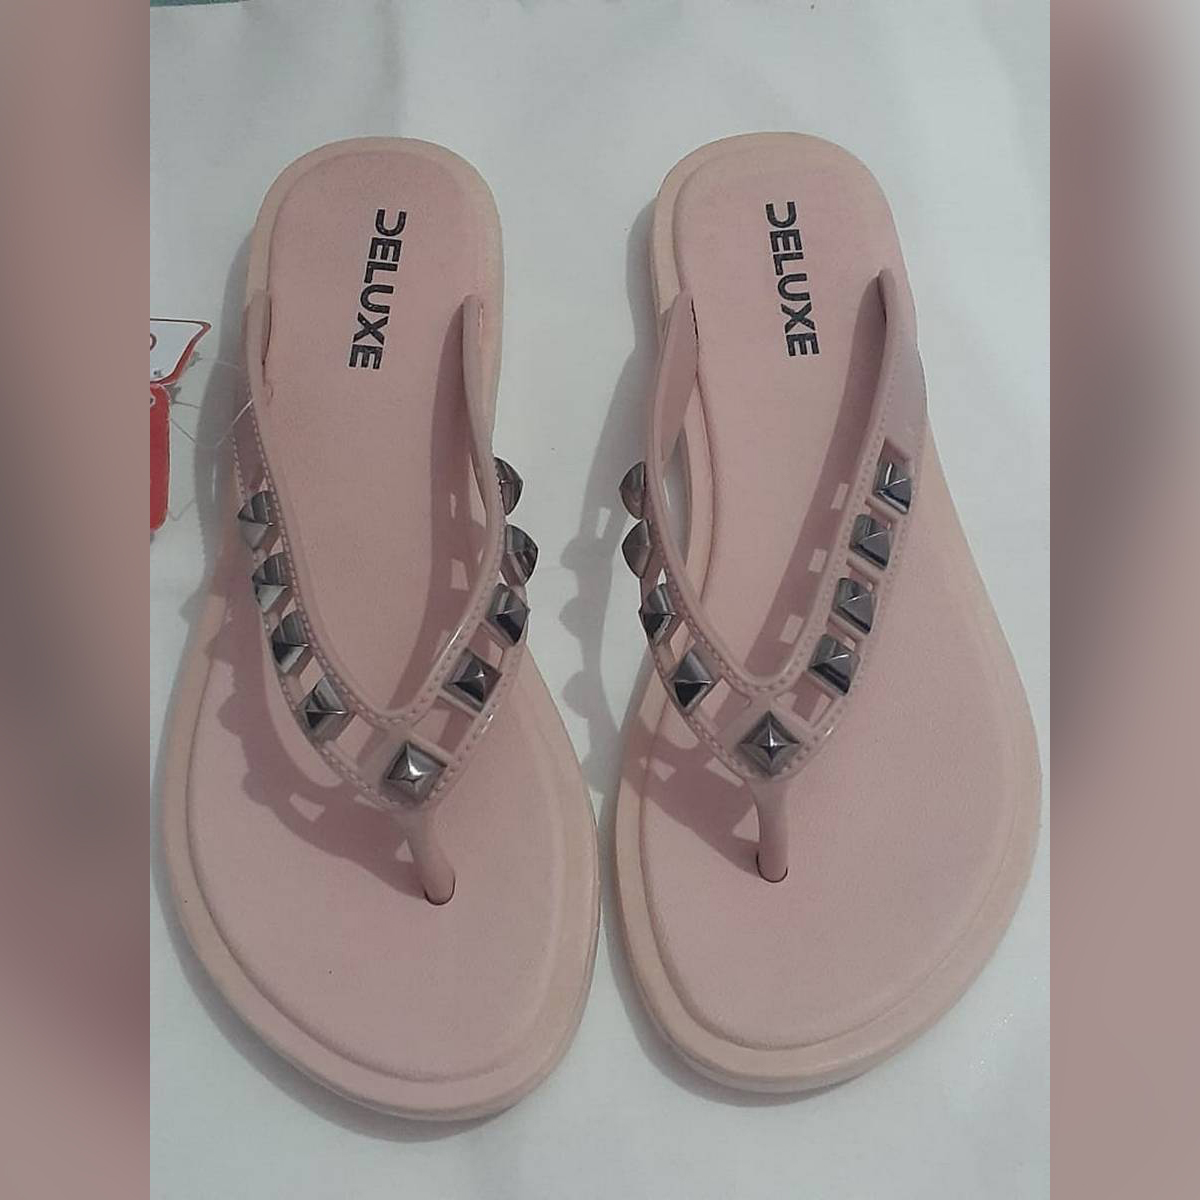 Casual house slippers for women